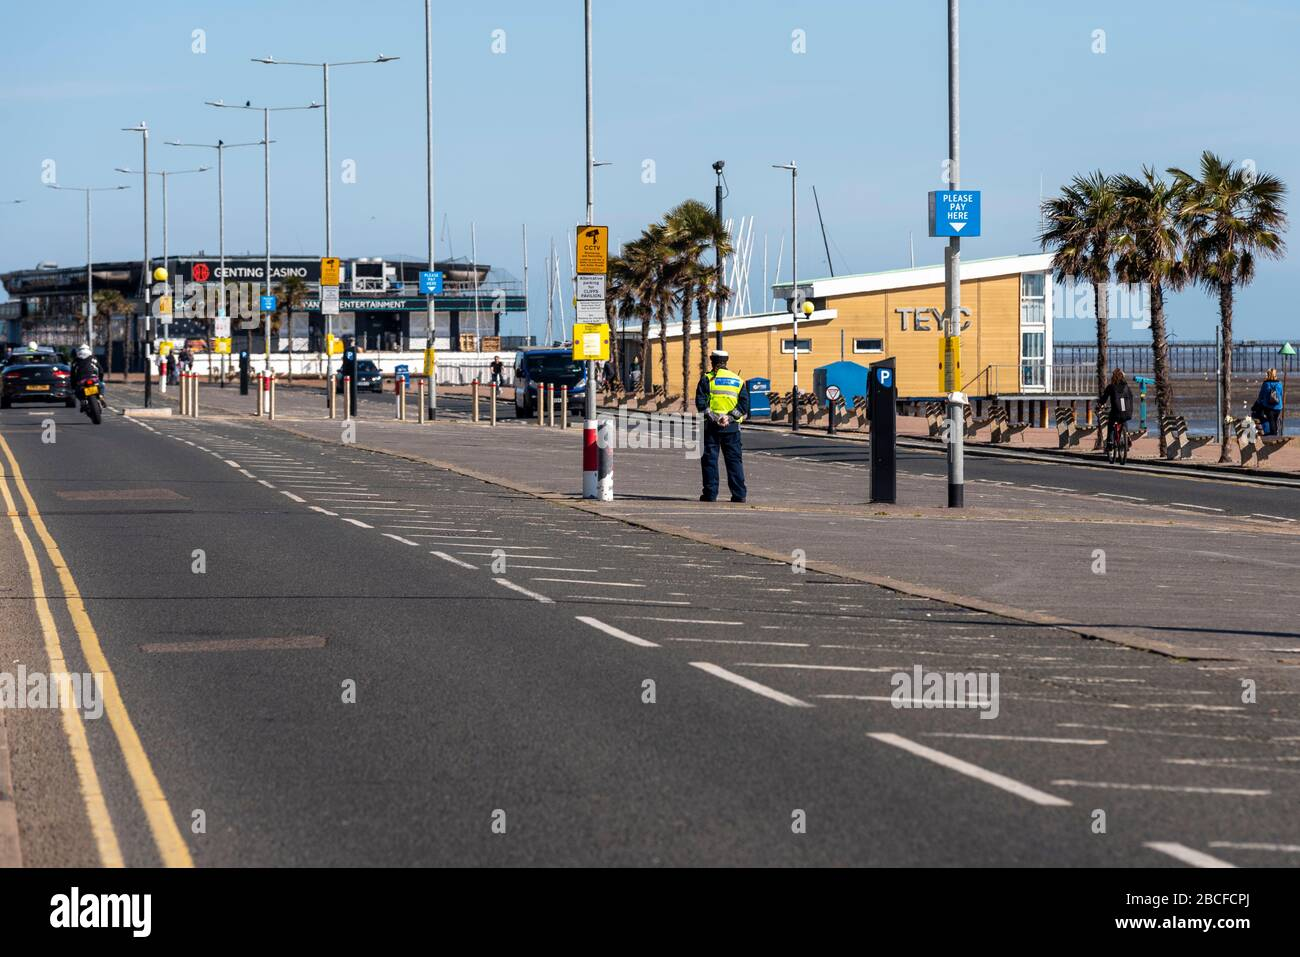 southend-on-sea-essex-uk-4th-april-2020-most-people-have-heeded-the-warnings-to-stay-away-from-southend-on-sea-seafront-during-the-covid-19-coronavirus-pandemic-lockdown-period-council-and-police-feared-that-the-warm-sunny-weather-would-lead-to-crowds-gathering-on-the-seafront-so-have-closed-the-car-parks-along-the-front-and-in-the-town-some-people-made-use-of-the-weather-to-get-their-exercise-but-obeyed-the-social-distancing-guidelines-civil-enforcement-officer-guarding-parking-spaces-credit-avpicsalamy-live-news-2BCFCPJ.jpg